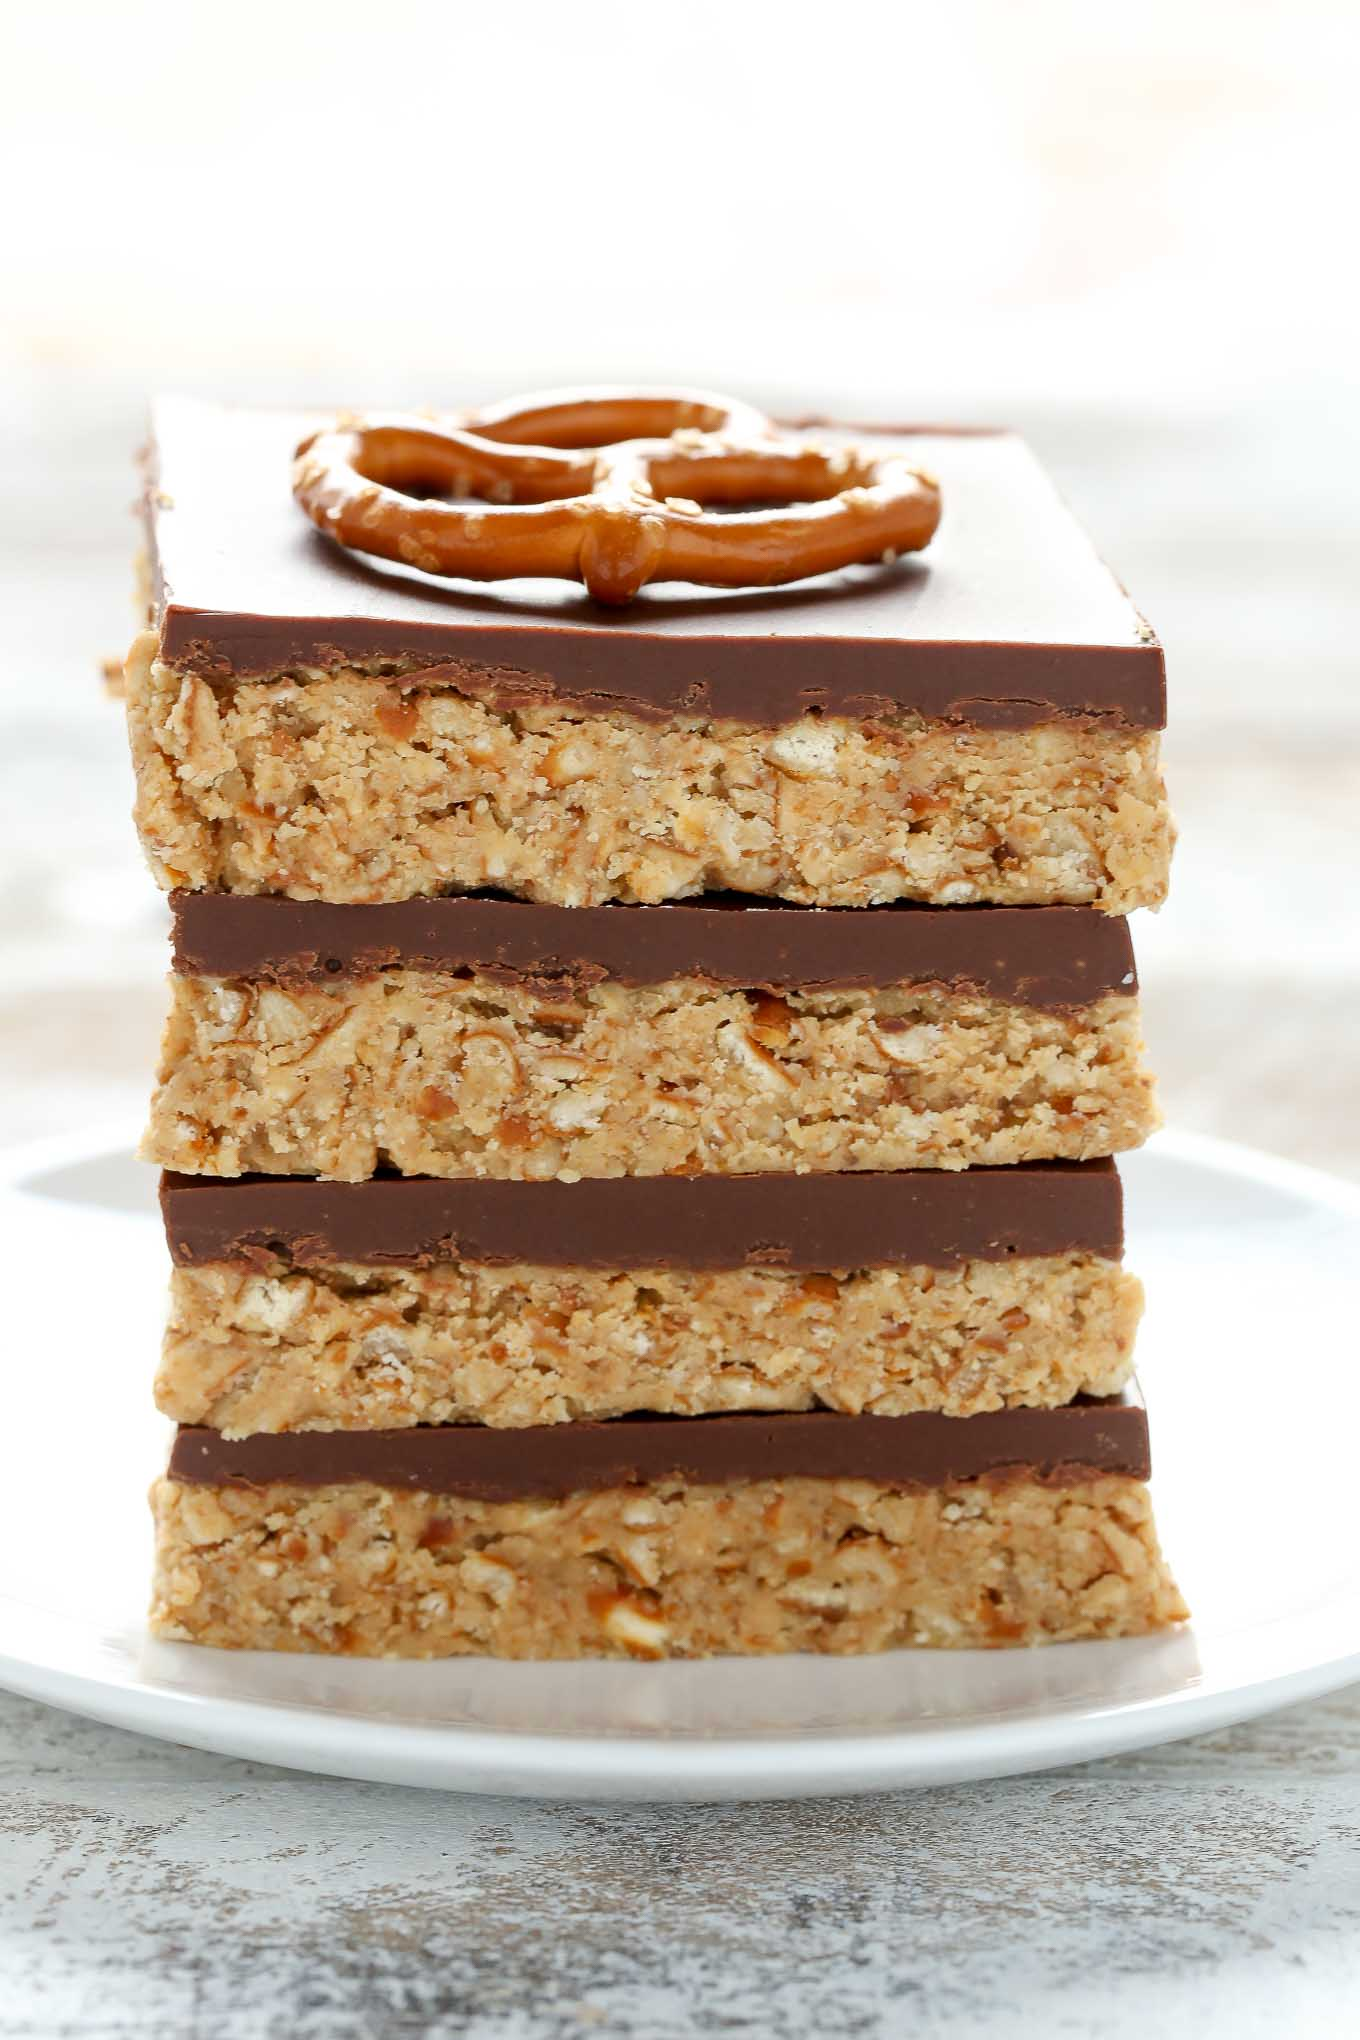 These No-Bake Peanut Butter Pretzel bars are the perfect sweet and salty dessert. You only need five ingredients to make these incredibly easy bars too!